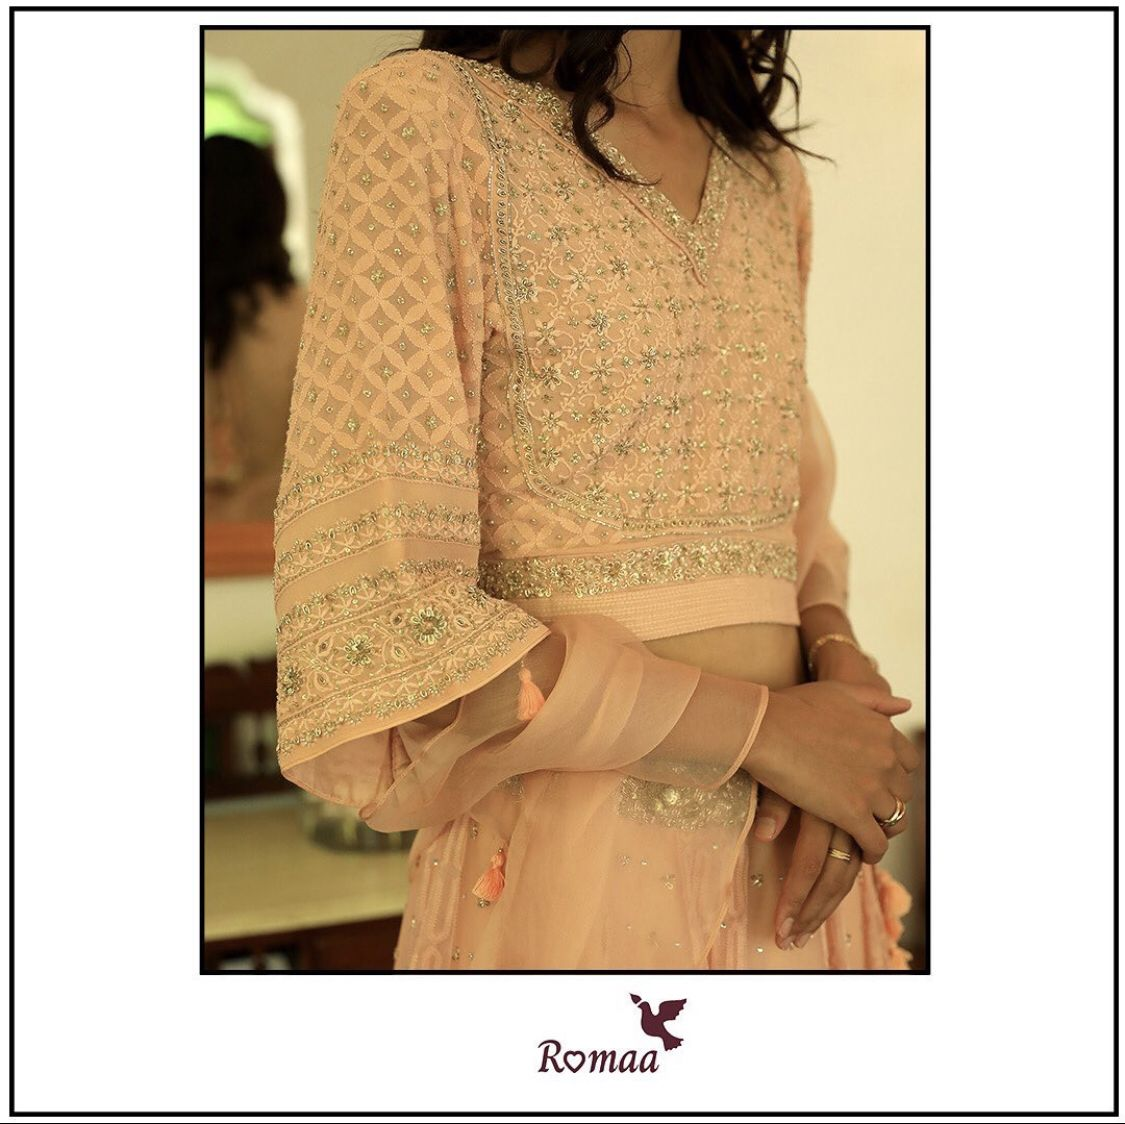 Elegant in pastels : There is never an occasion where pastels can let you down. This festive season, choose our simple yet glamorous lehenga with intricate detailing and a ruffle dupatta that will alway remains fashionable. #couture #fashion #style #Romaalabel #hautecouture #handmade #coutureaddict #dress #designer #sewing #fashiondesigner #fashionista #fashionblogger #couturefashion #festivewear #weddingtrousseau #weddingcouture #instafashion #luxury #design #dresses #fashionstyle #bhfyp